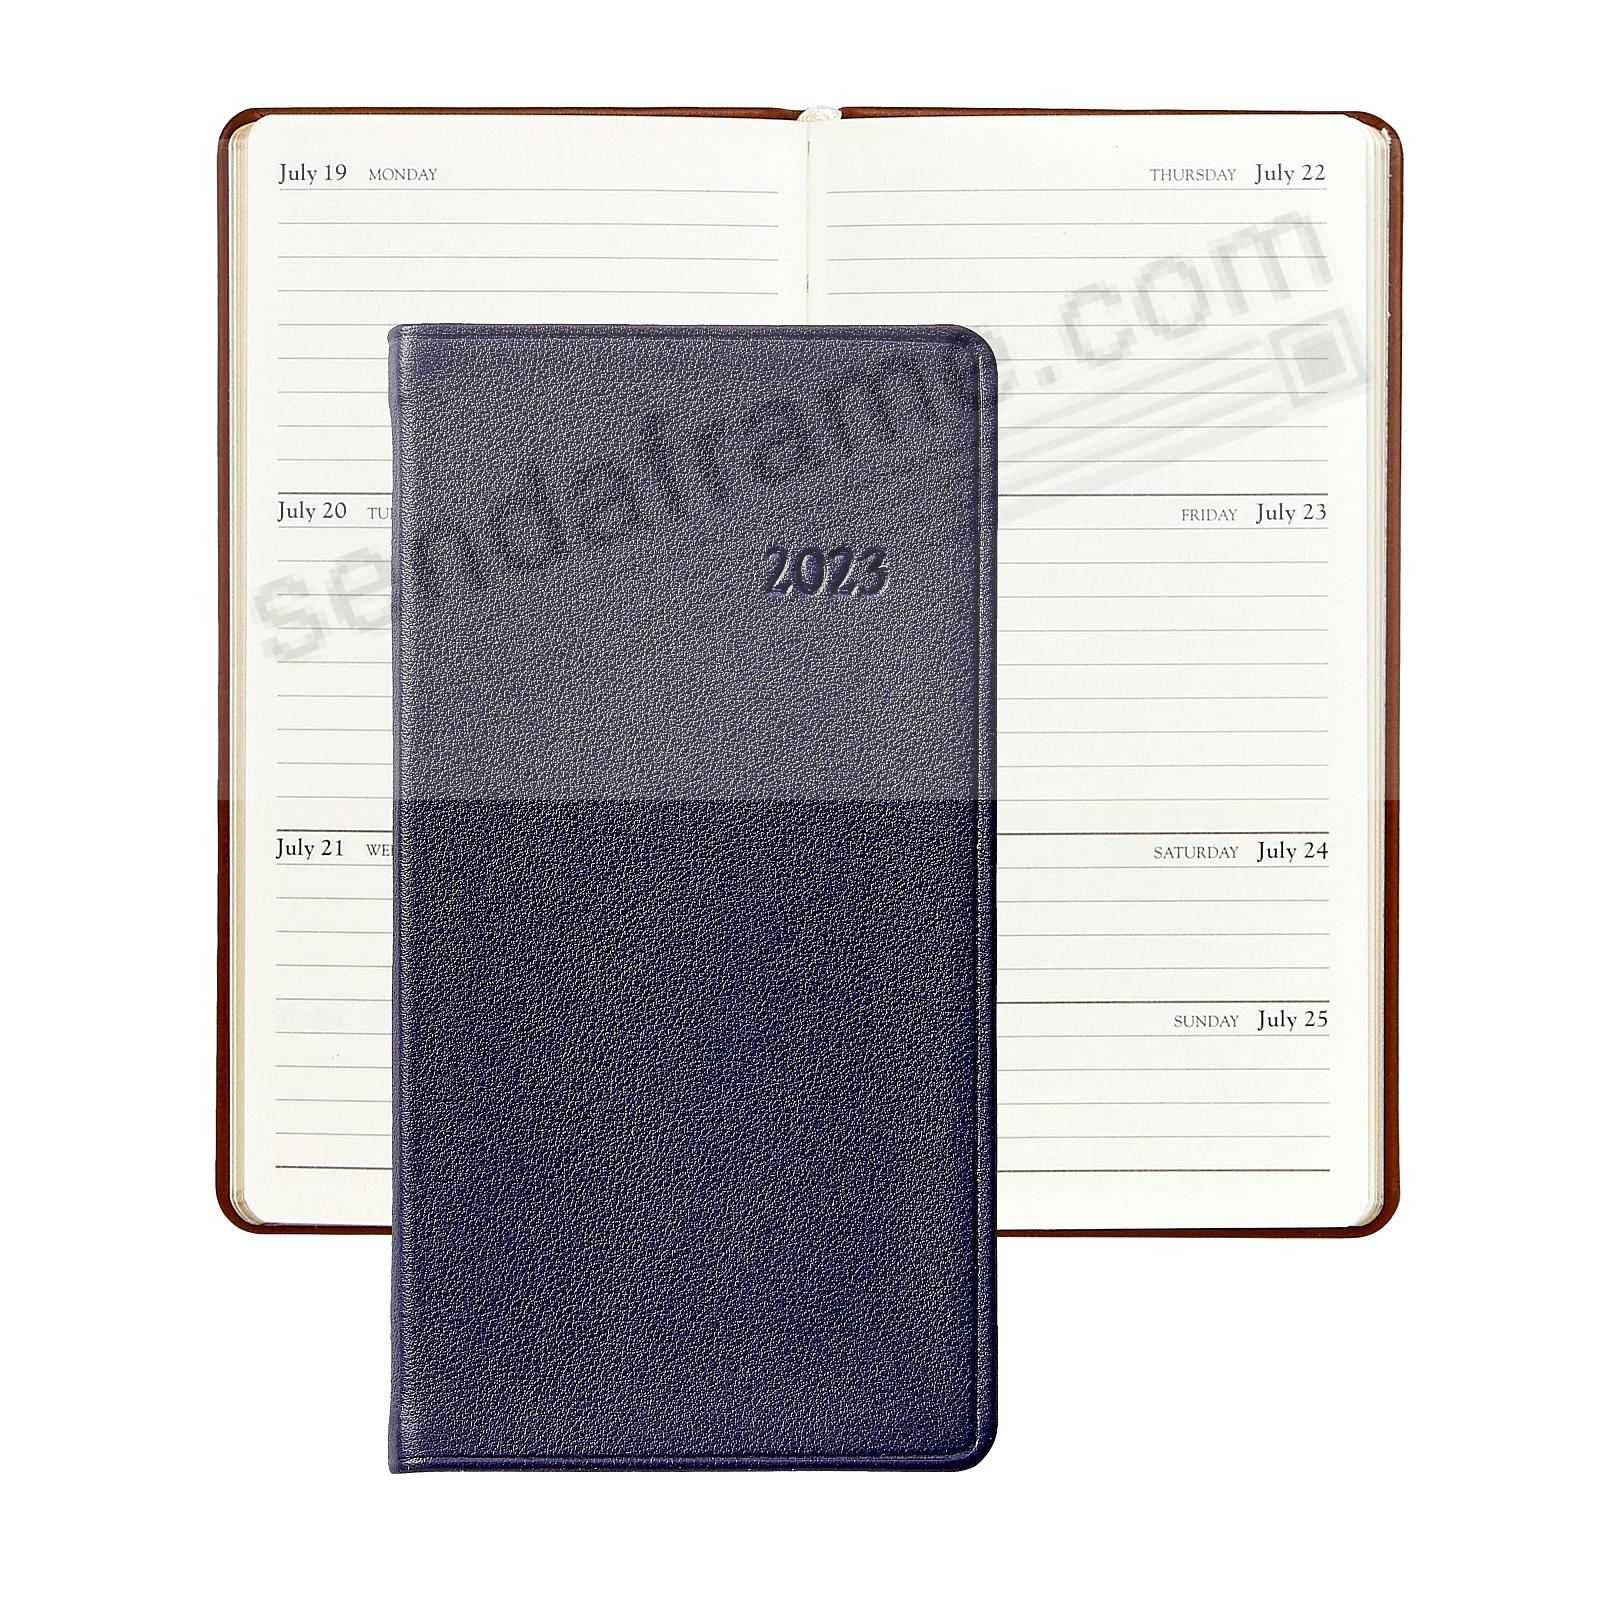 2020 TRADITIONAL-BLUE 6-inch Pocket Datebook Diary in Fine Calfskin Leather by Graphic Image™